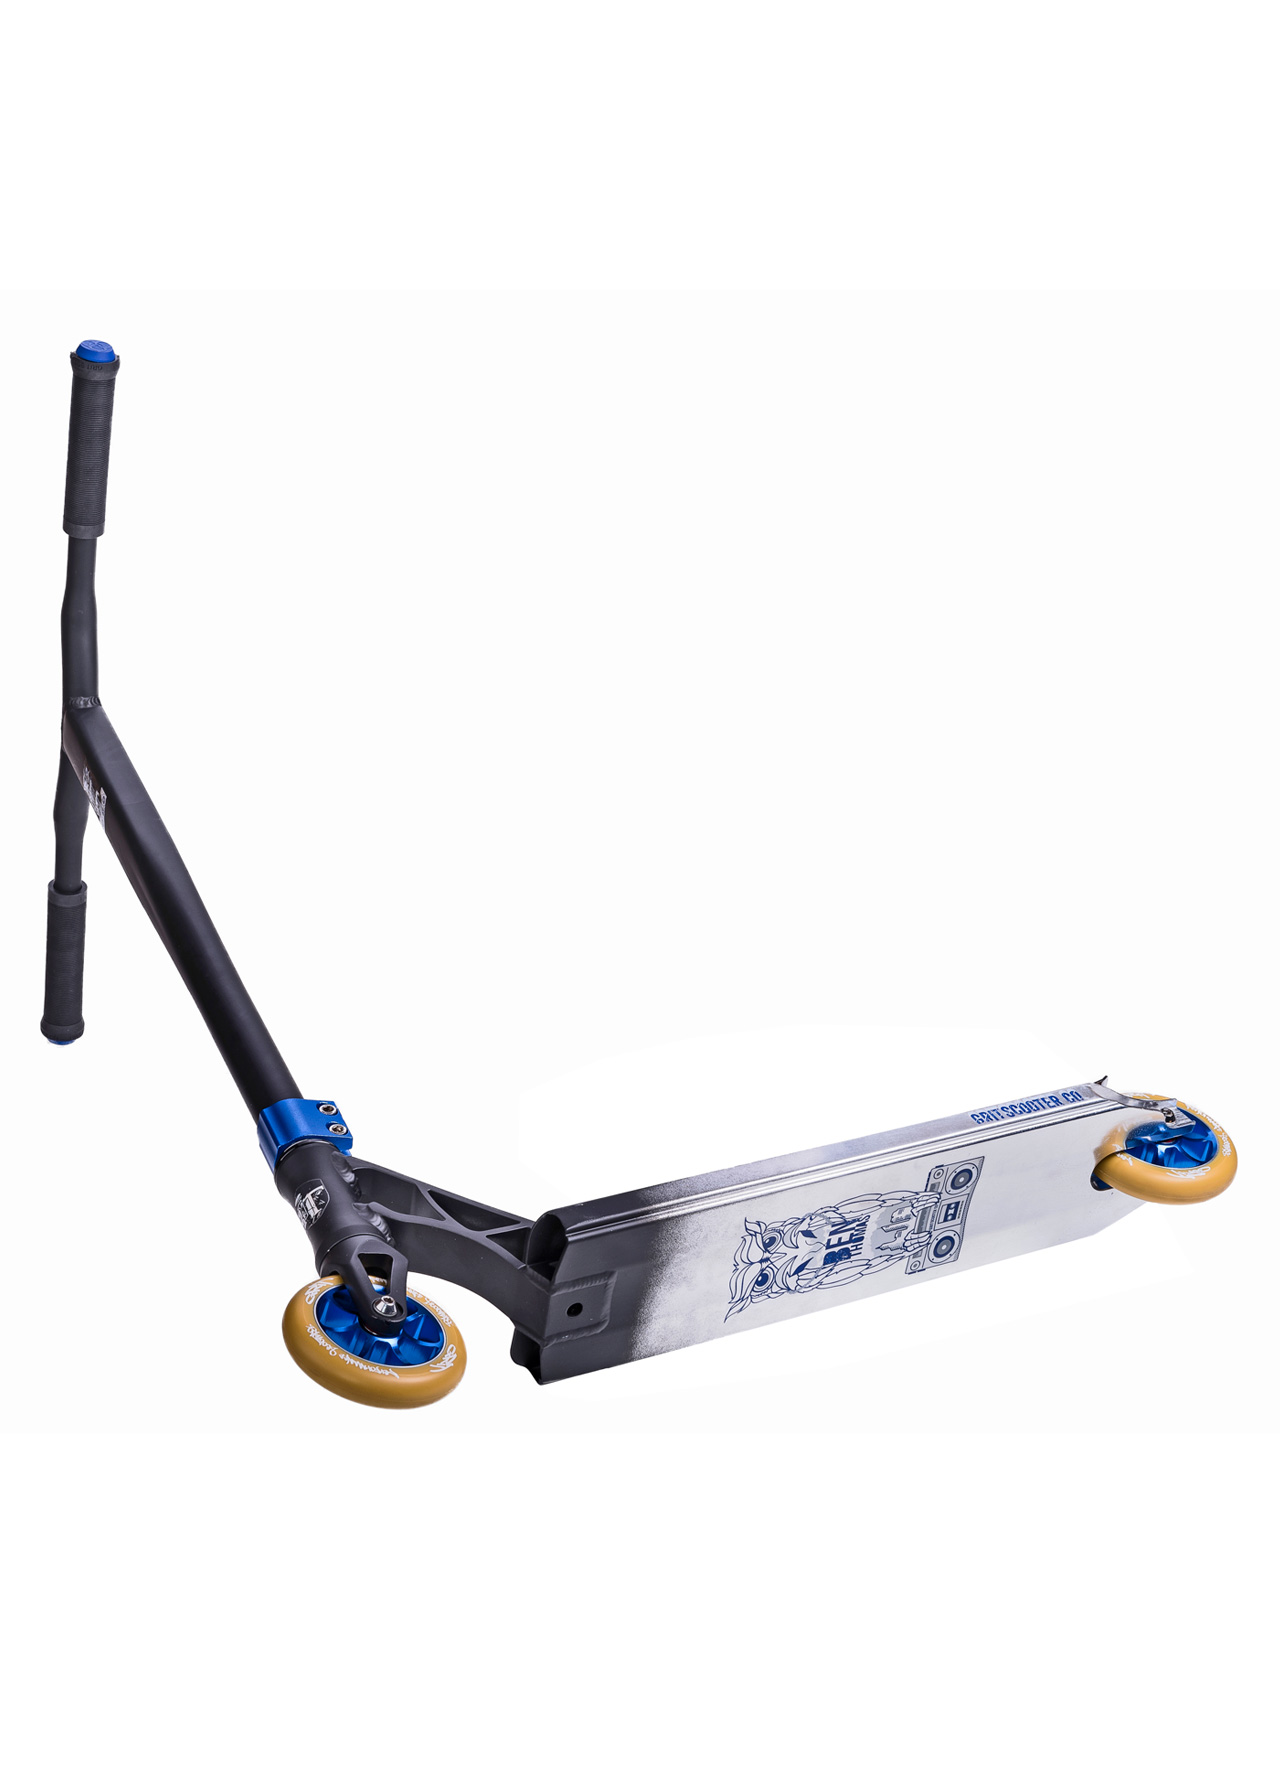 Ben Thomas signature scooter